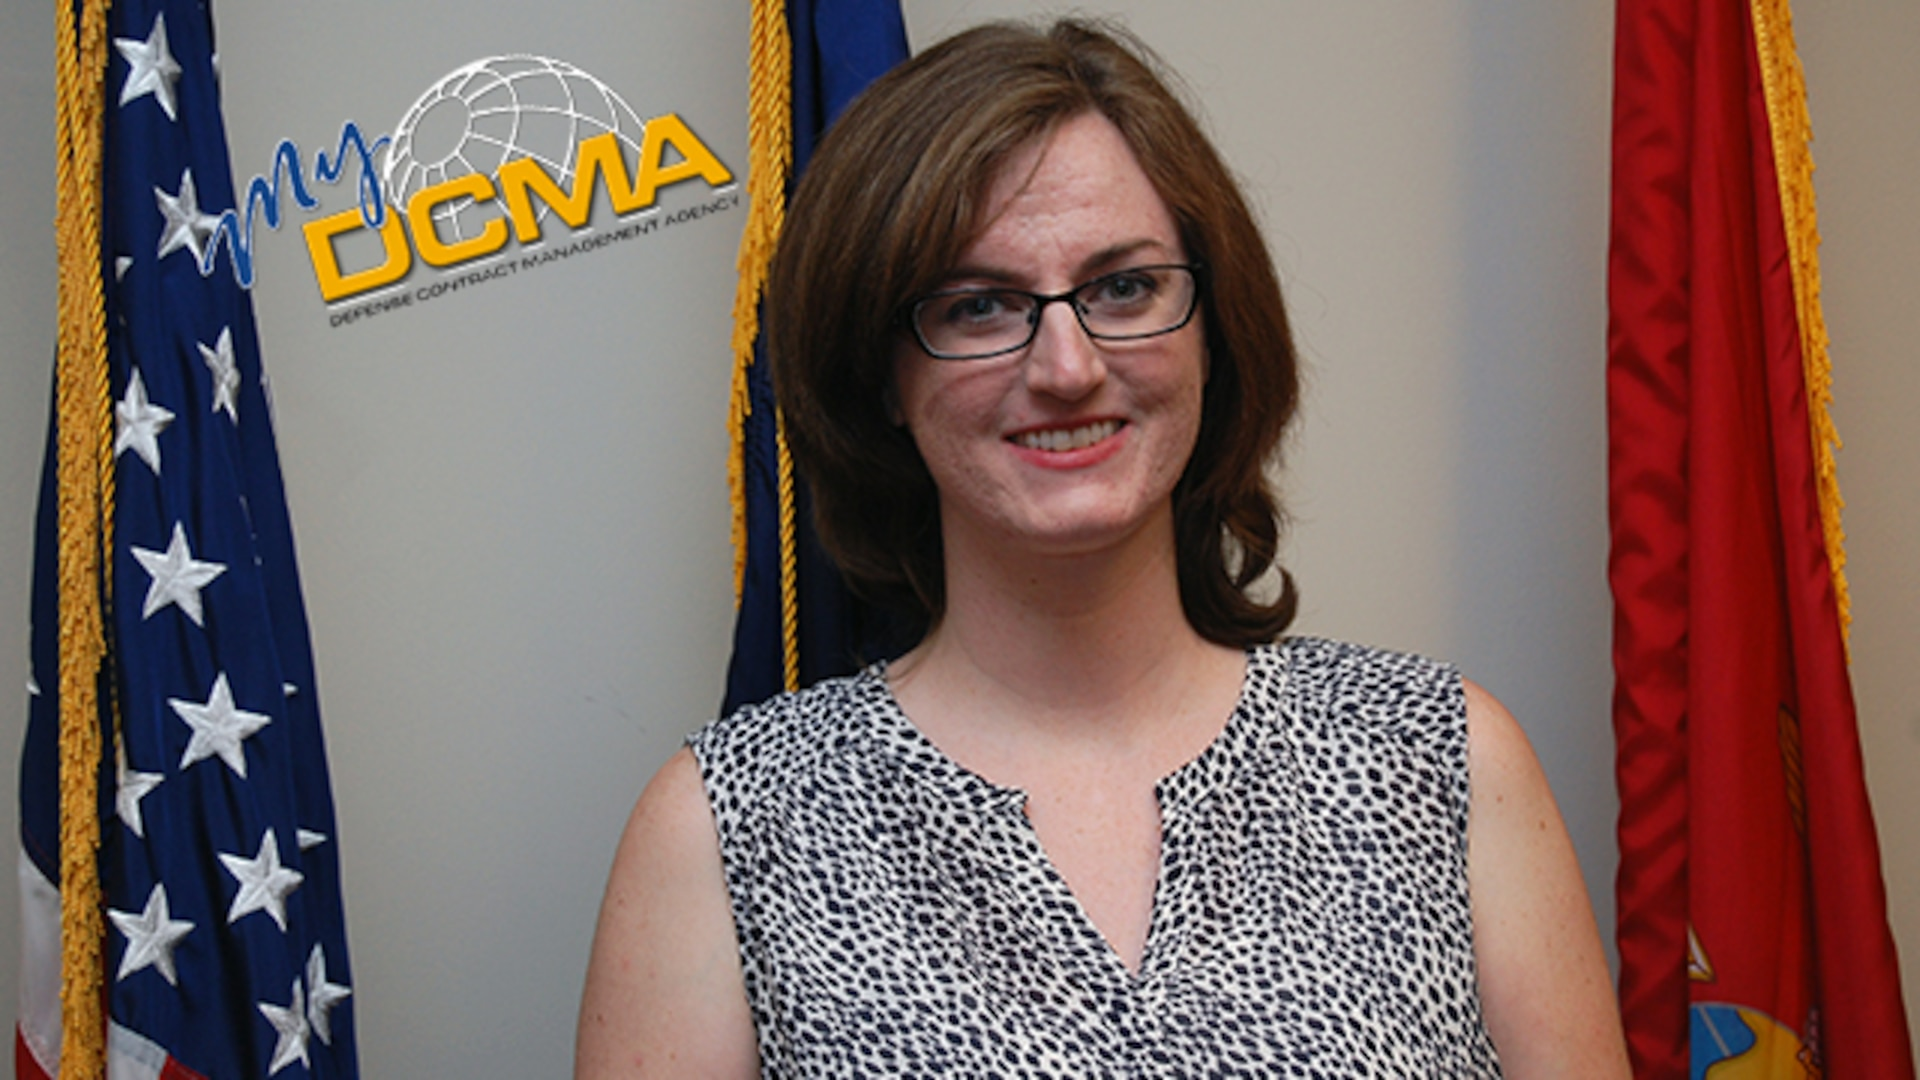 Erin Babcock is an administrative contracting officer at Defense Contract Management Agency Hampton. She has been a part of the DCMA team for four years. (DCMA photo by Tonya Johnson)